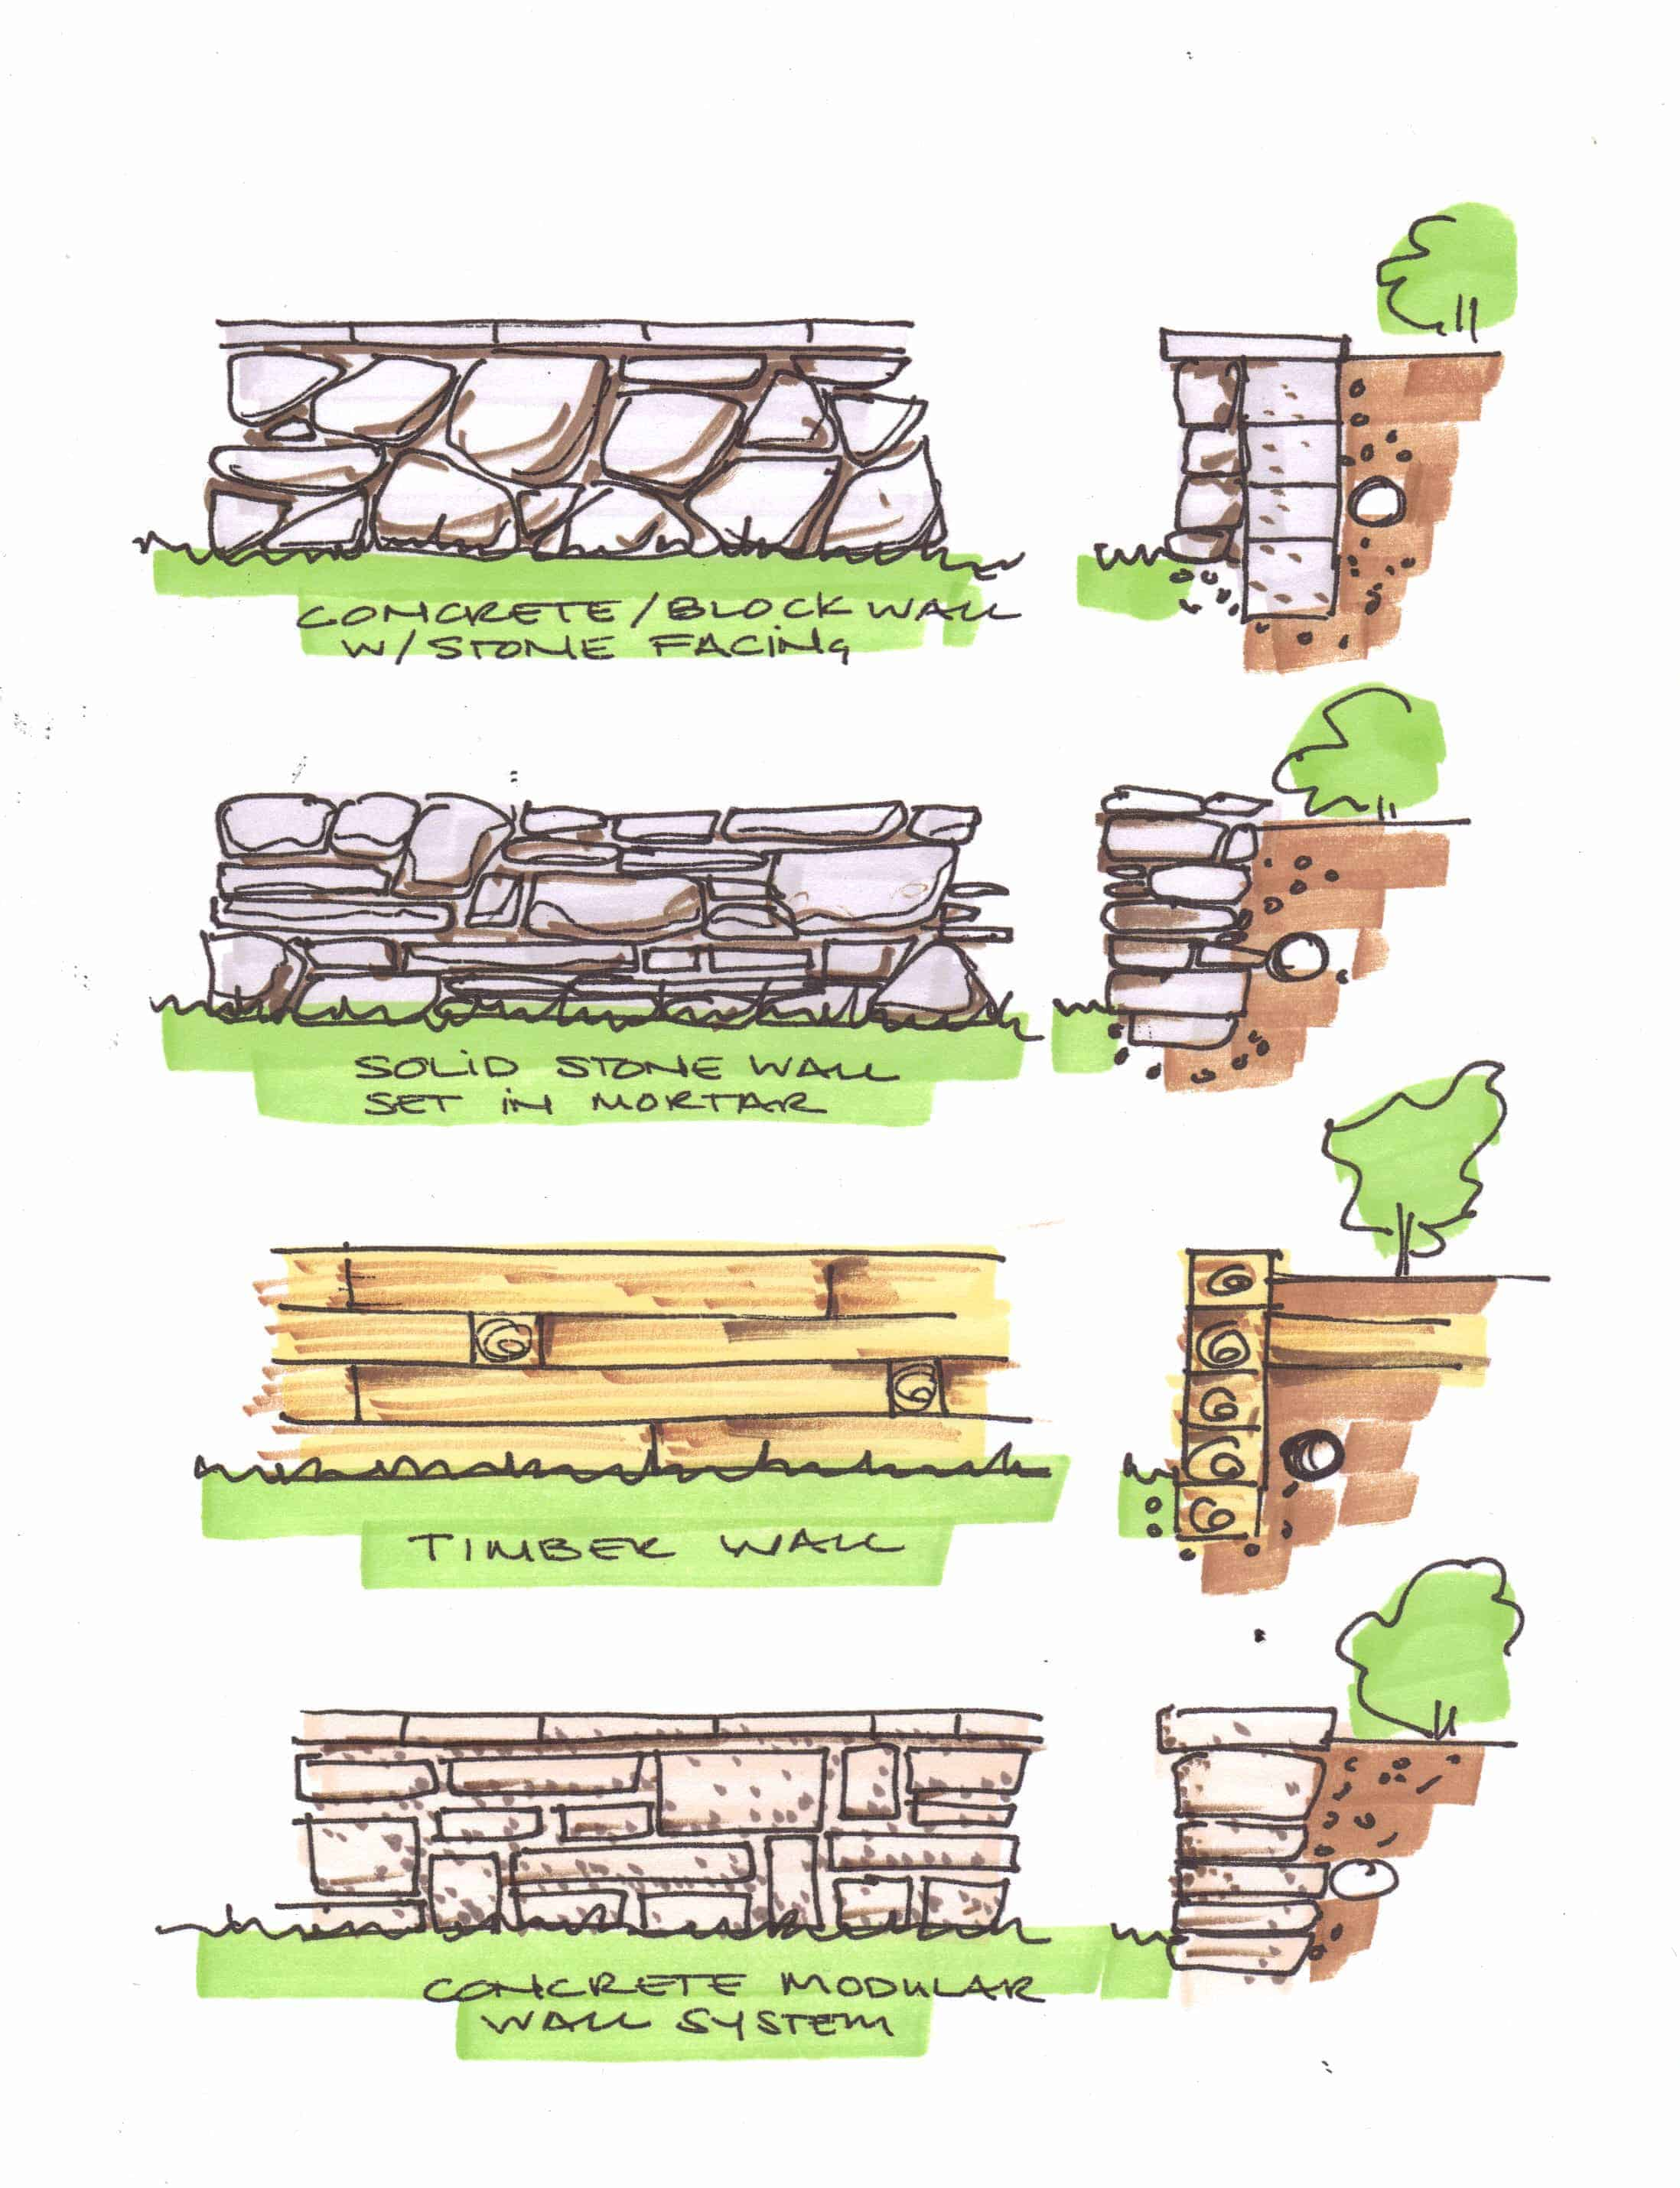 What Type of Retaining Wall Should You Build?